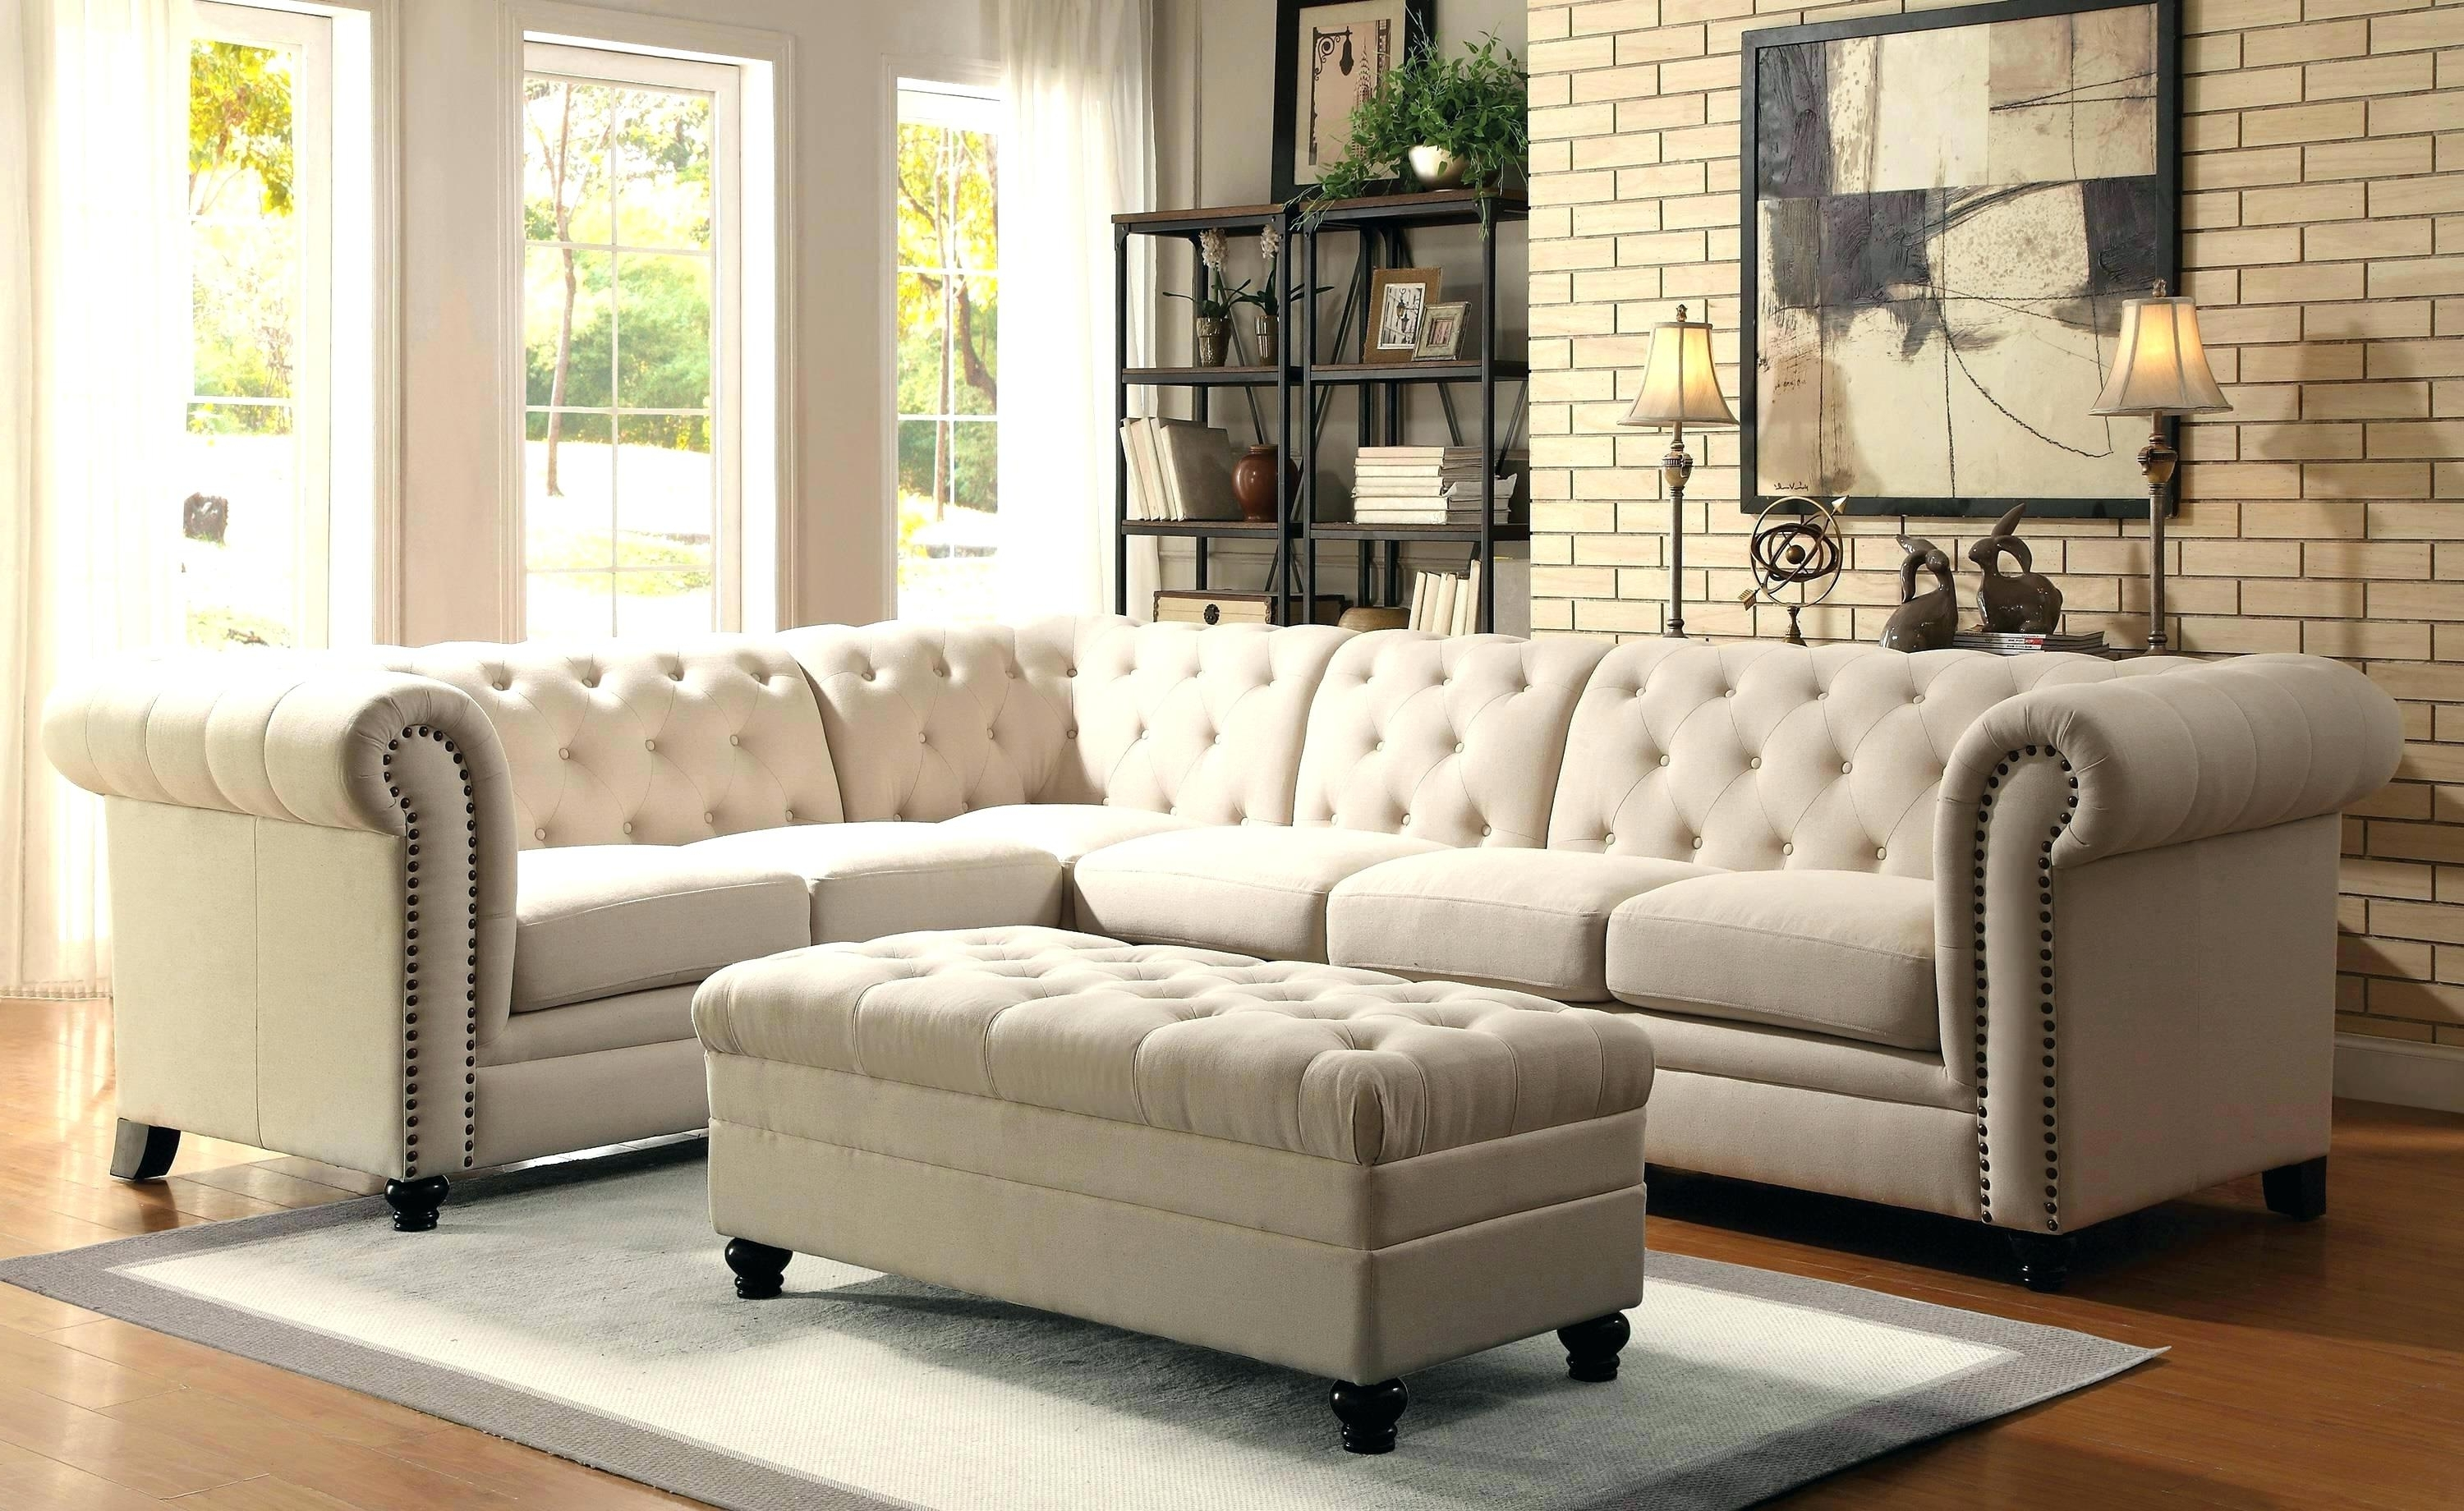 Fashionable Sectional Sofas Dallas Leather Sofa Tx Area – Province De Liege Throughout Dallas Sectional Sofas (View 14 of 20)